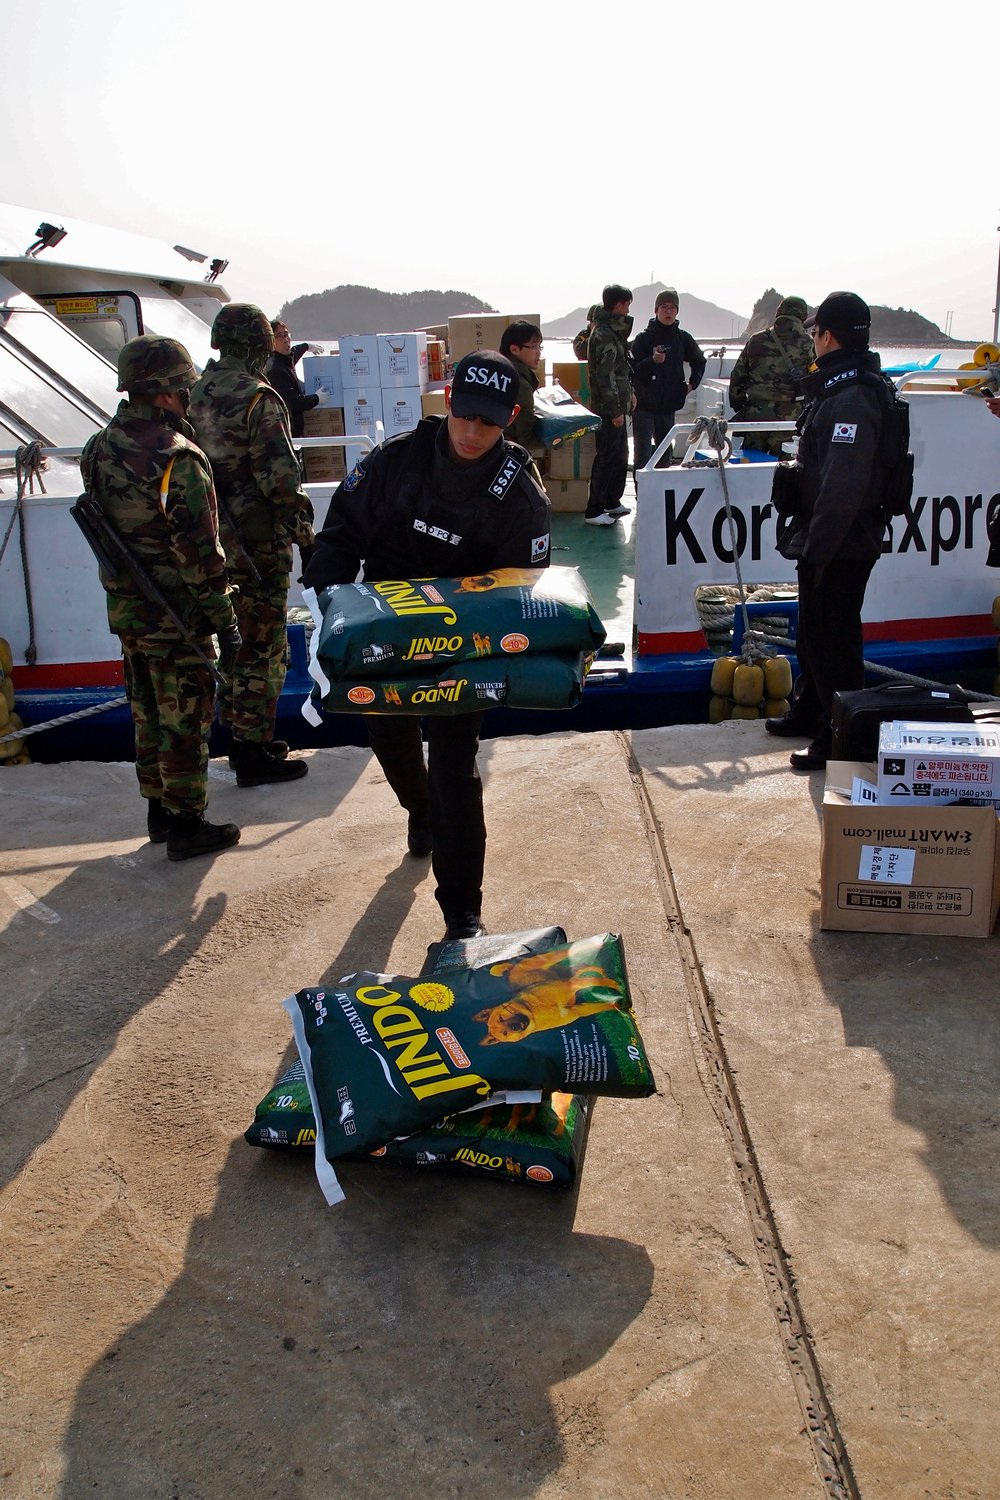 South Korean military personnel off loading dog food from a ferry at Yeonpyeong Island, which was evacuated after being hit by shelling from North Korea. (C) Remko Tanis